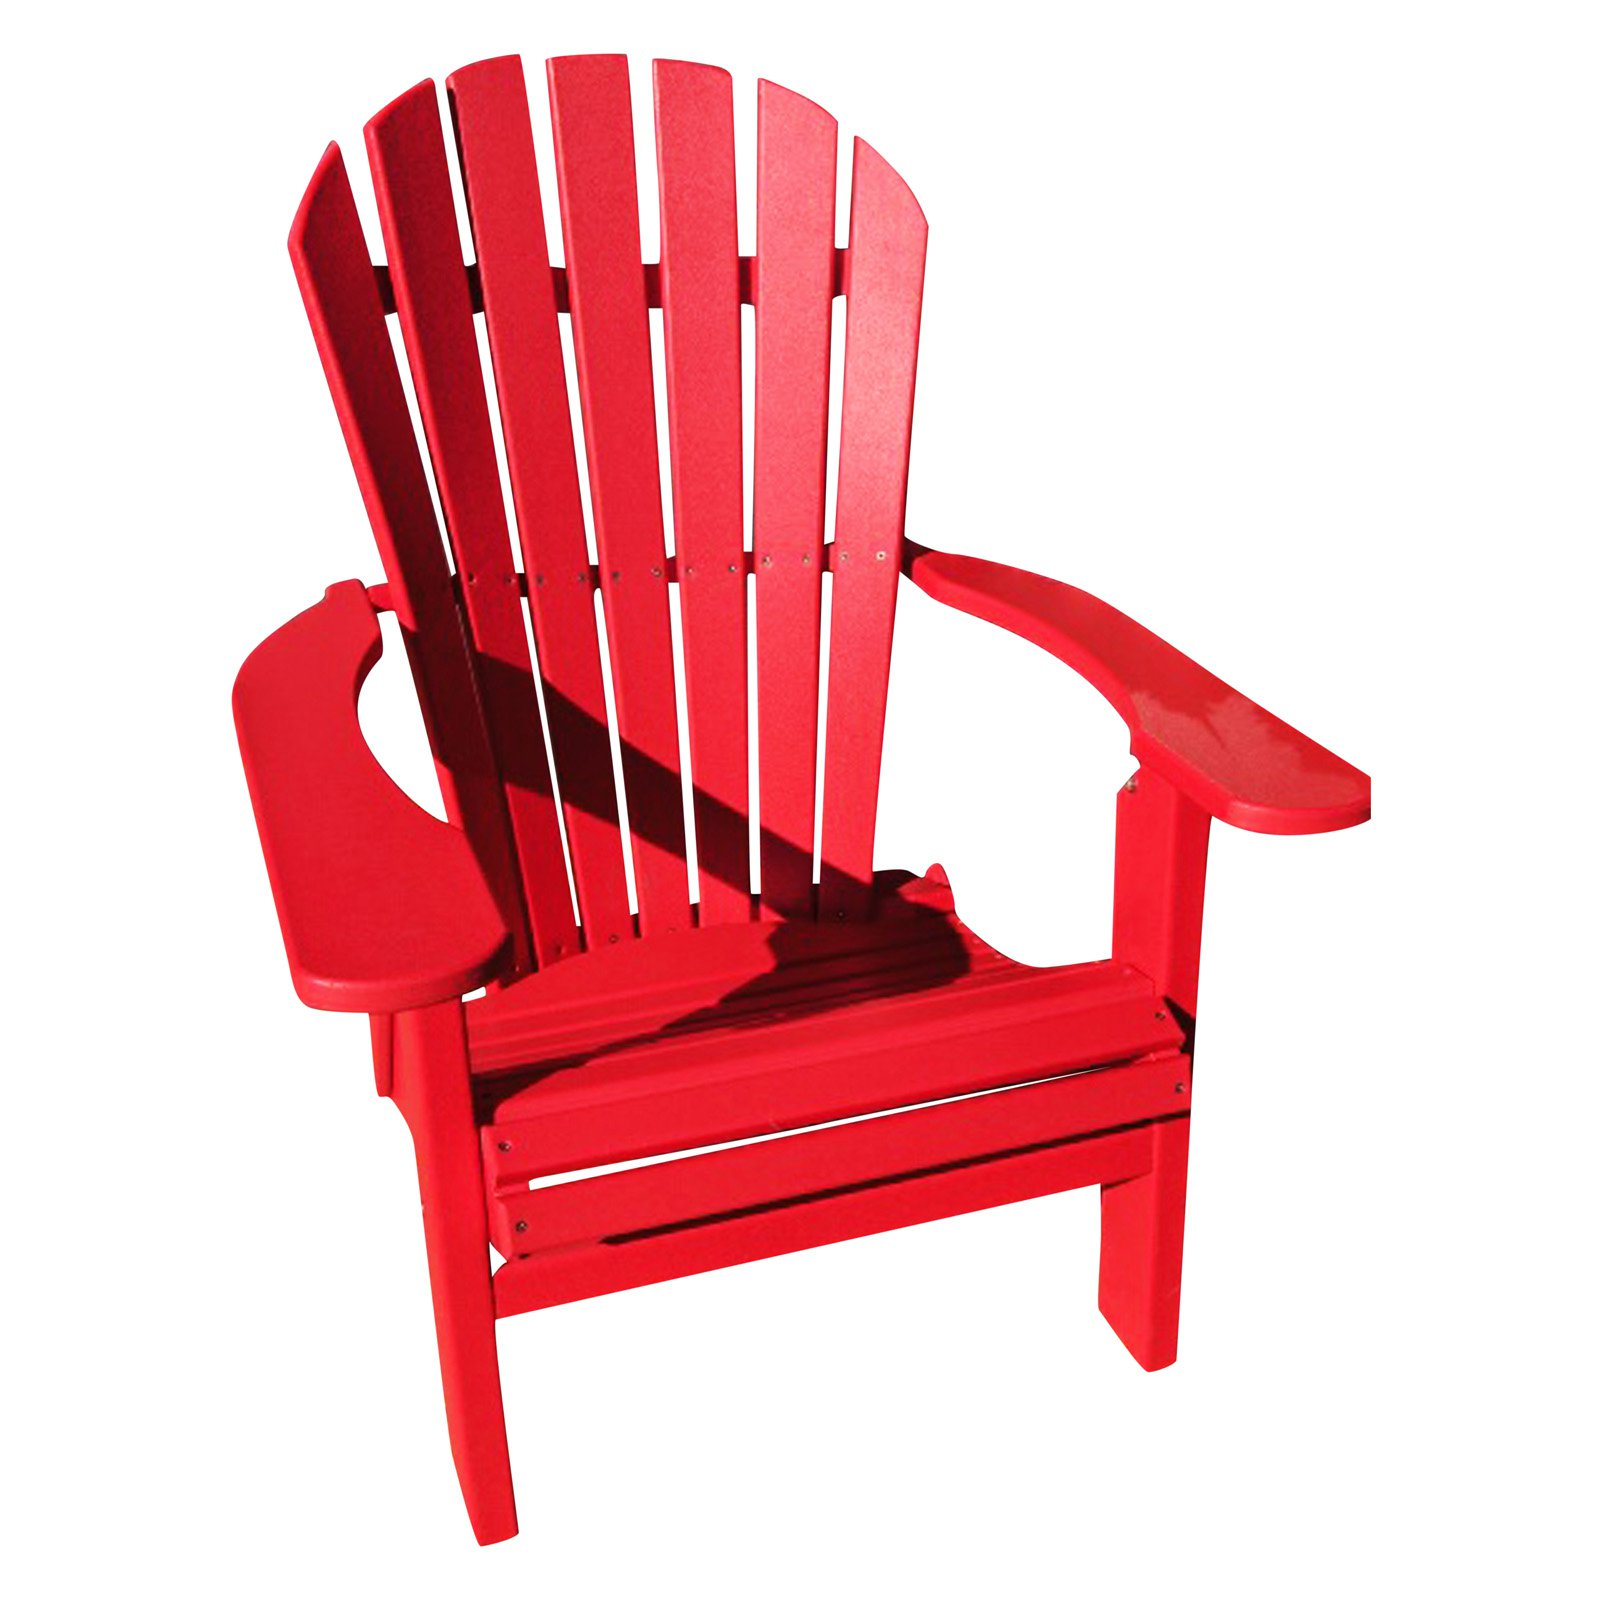 Phat Tommy Recycled Plastic Deluxe Folding Adirondack Chair by Adirondack Furniture